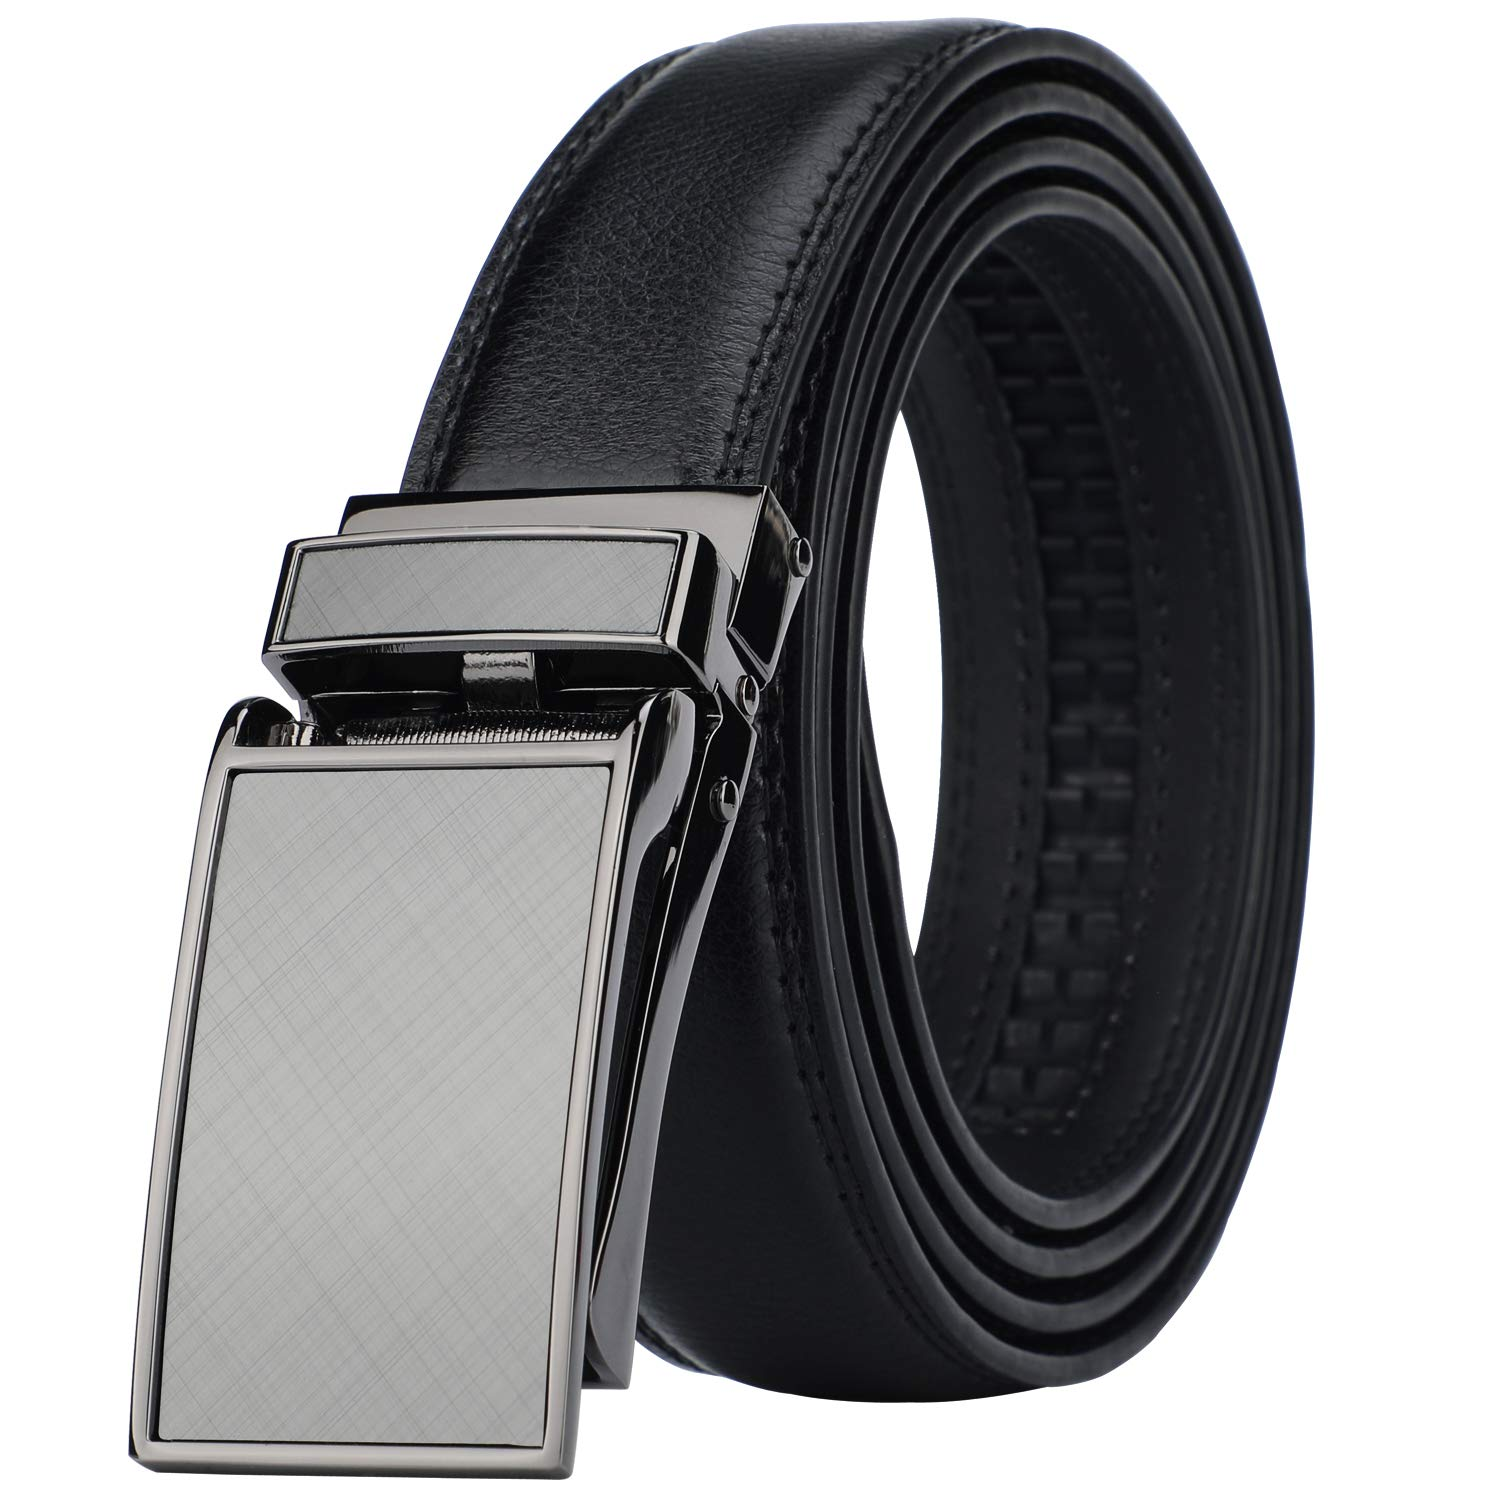 Men's Comfort Genuine Leather Ratchet Dress Belt with Automatic Click Buckle Style 1 -Black)